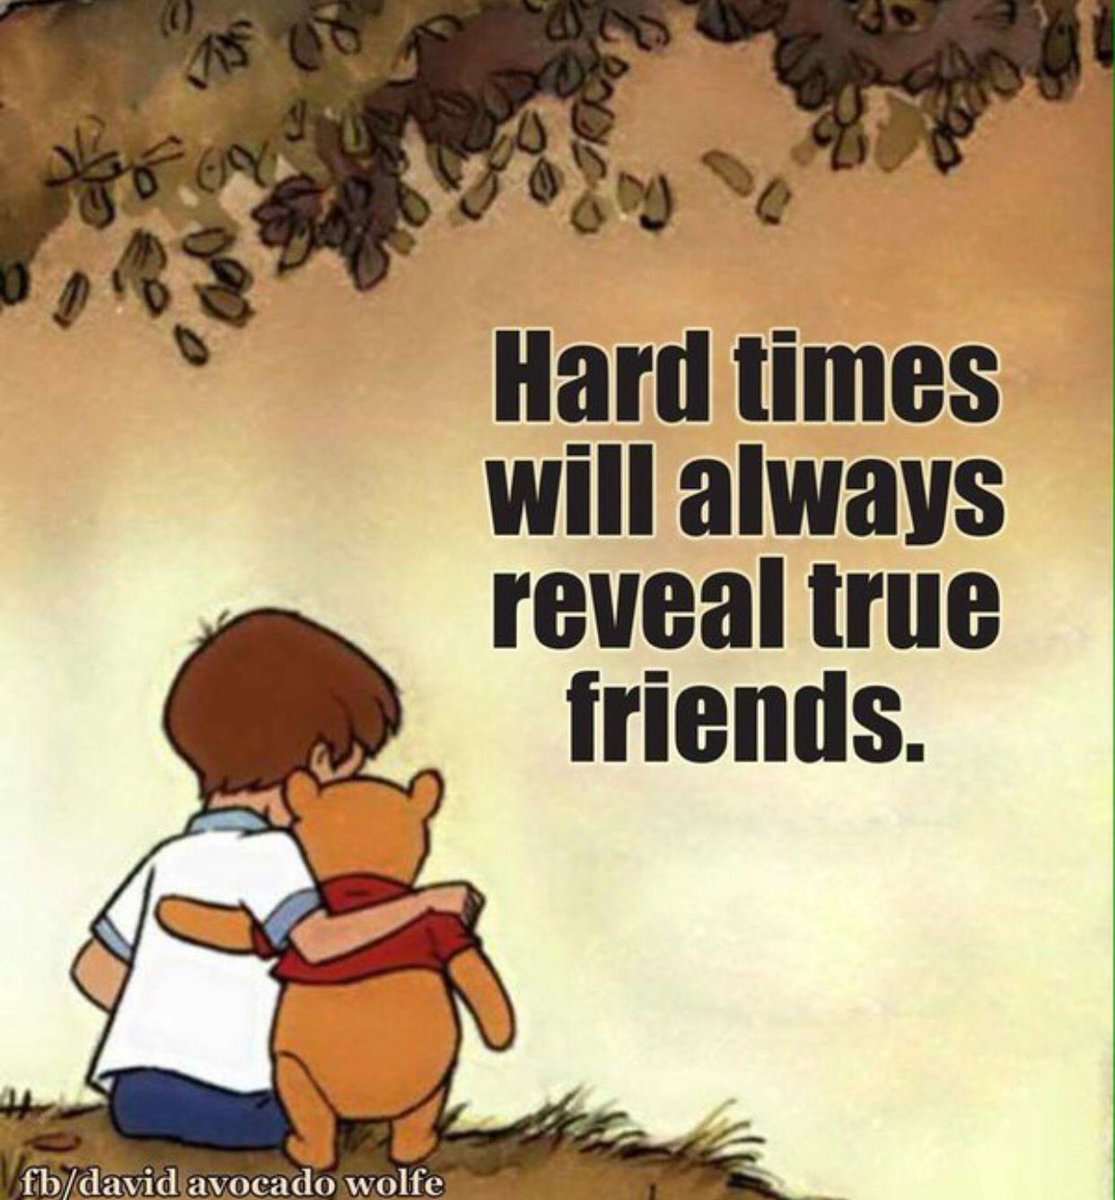 Friendship Quotes For Friends Going Through Hard Times : Wright thurston on twitter quot hard times will always reveal